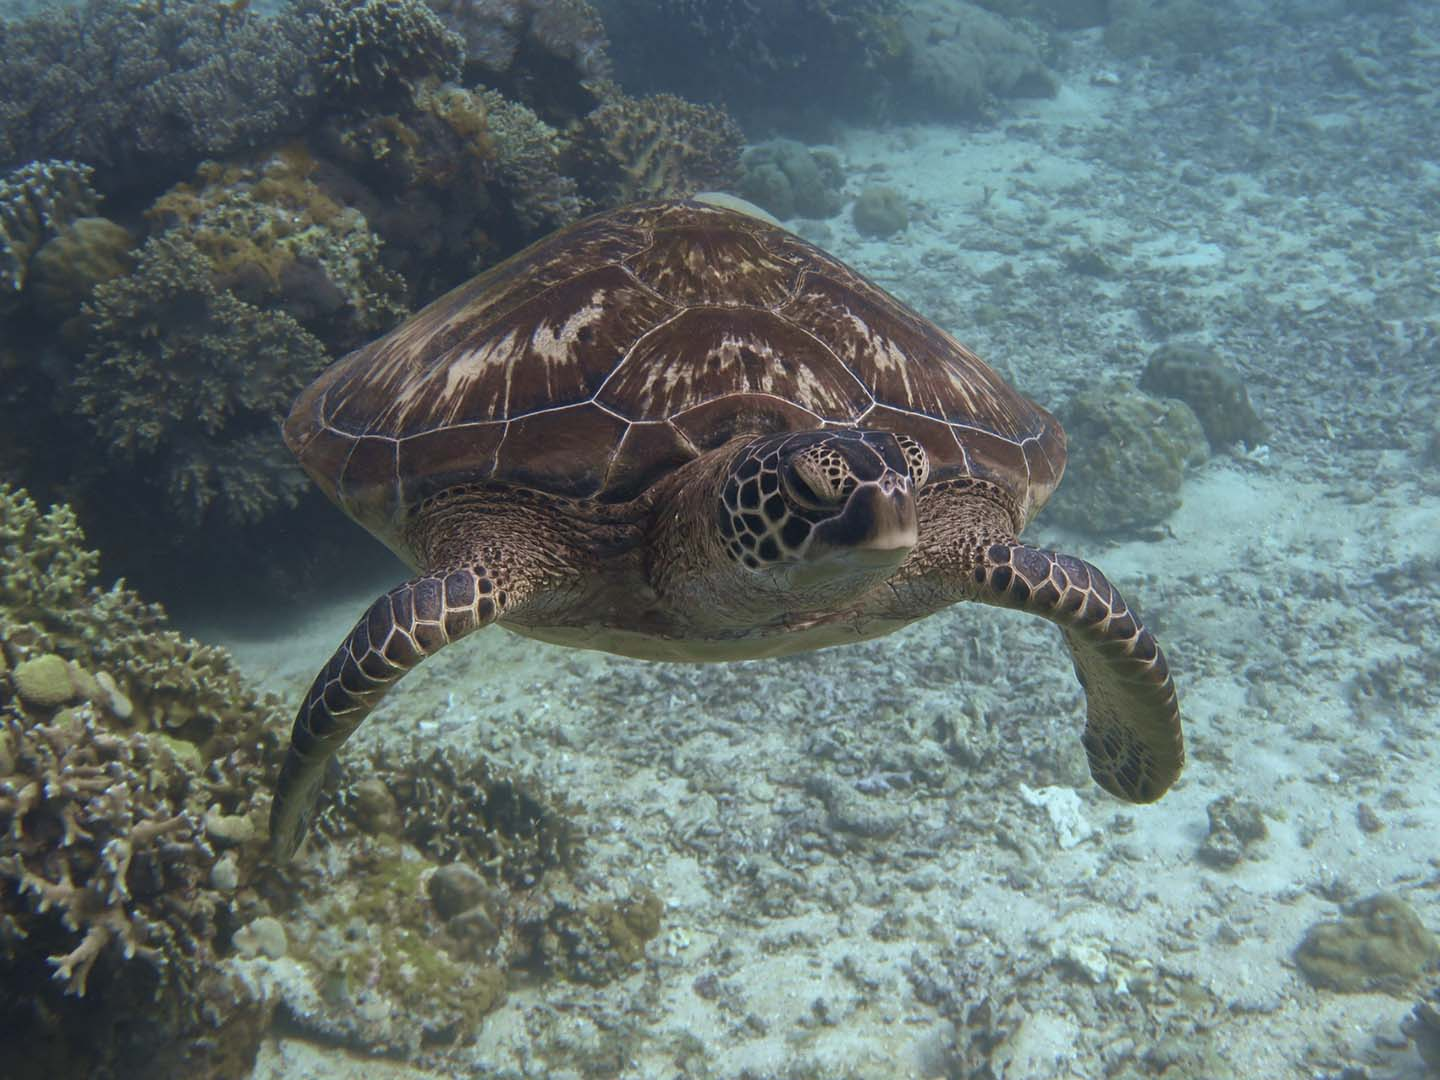 One of the many turtles that live in Apo Island